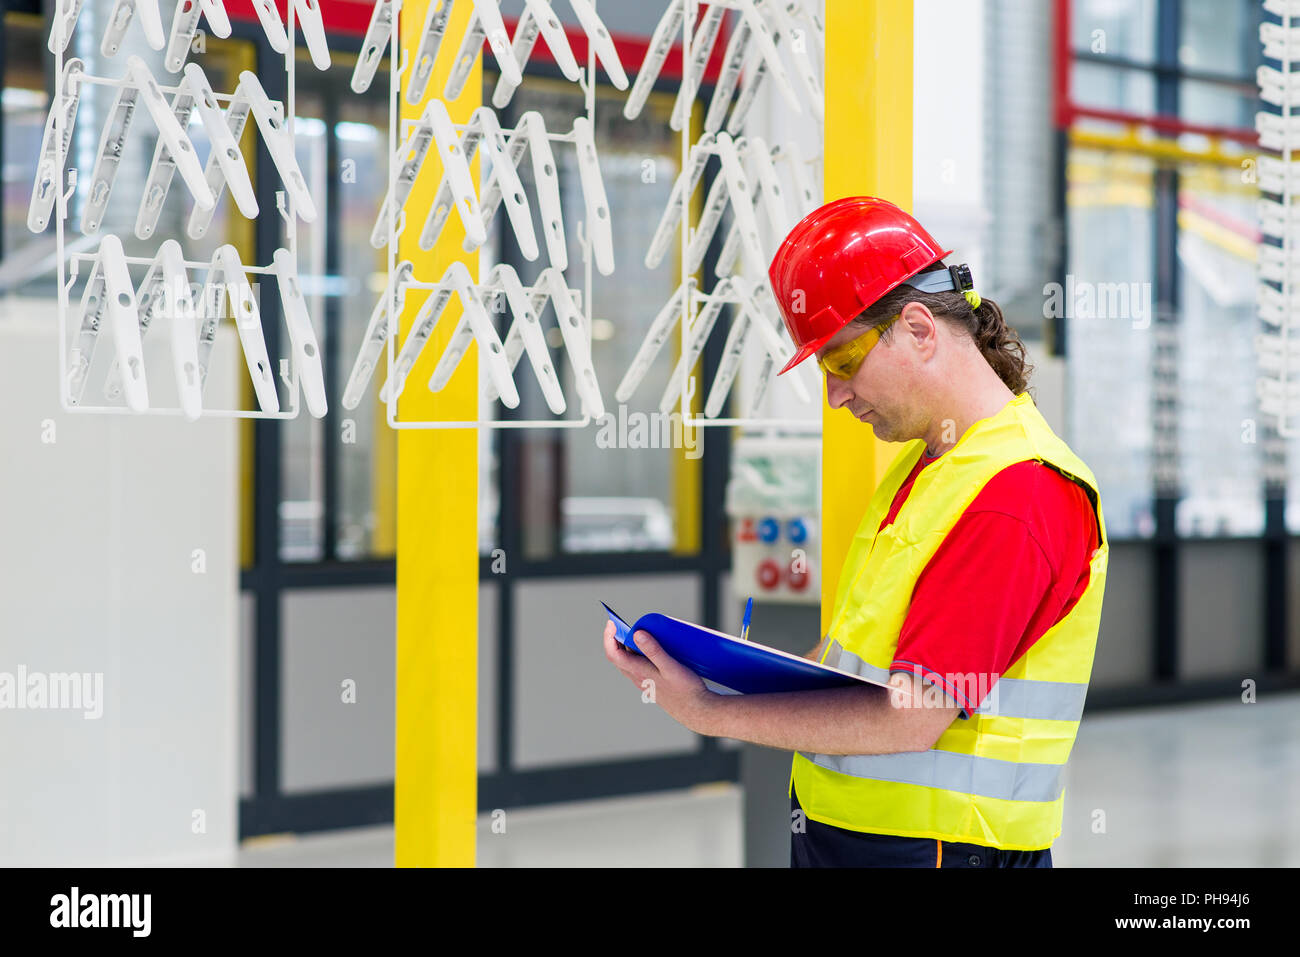 Factory supervisor checking production line for quality control - Stock Image